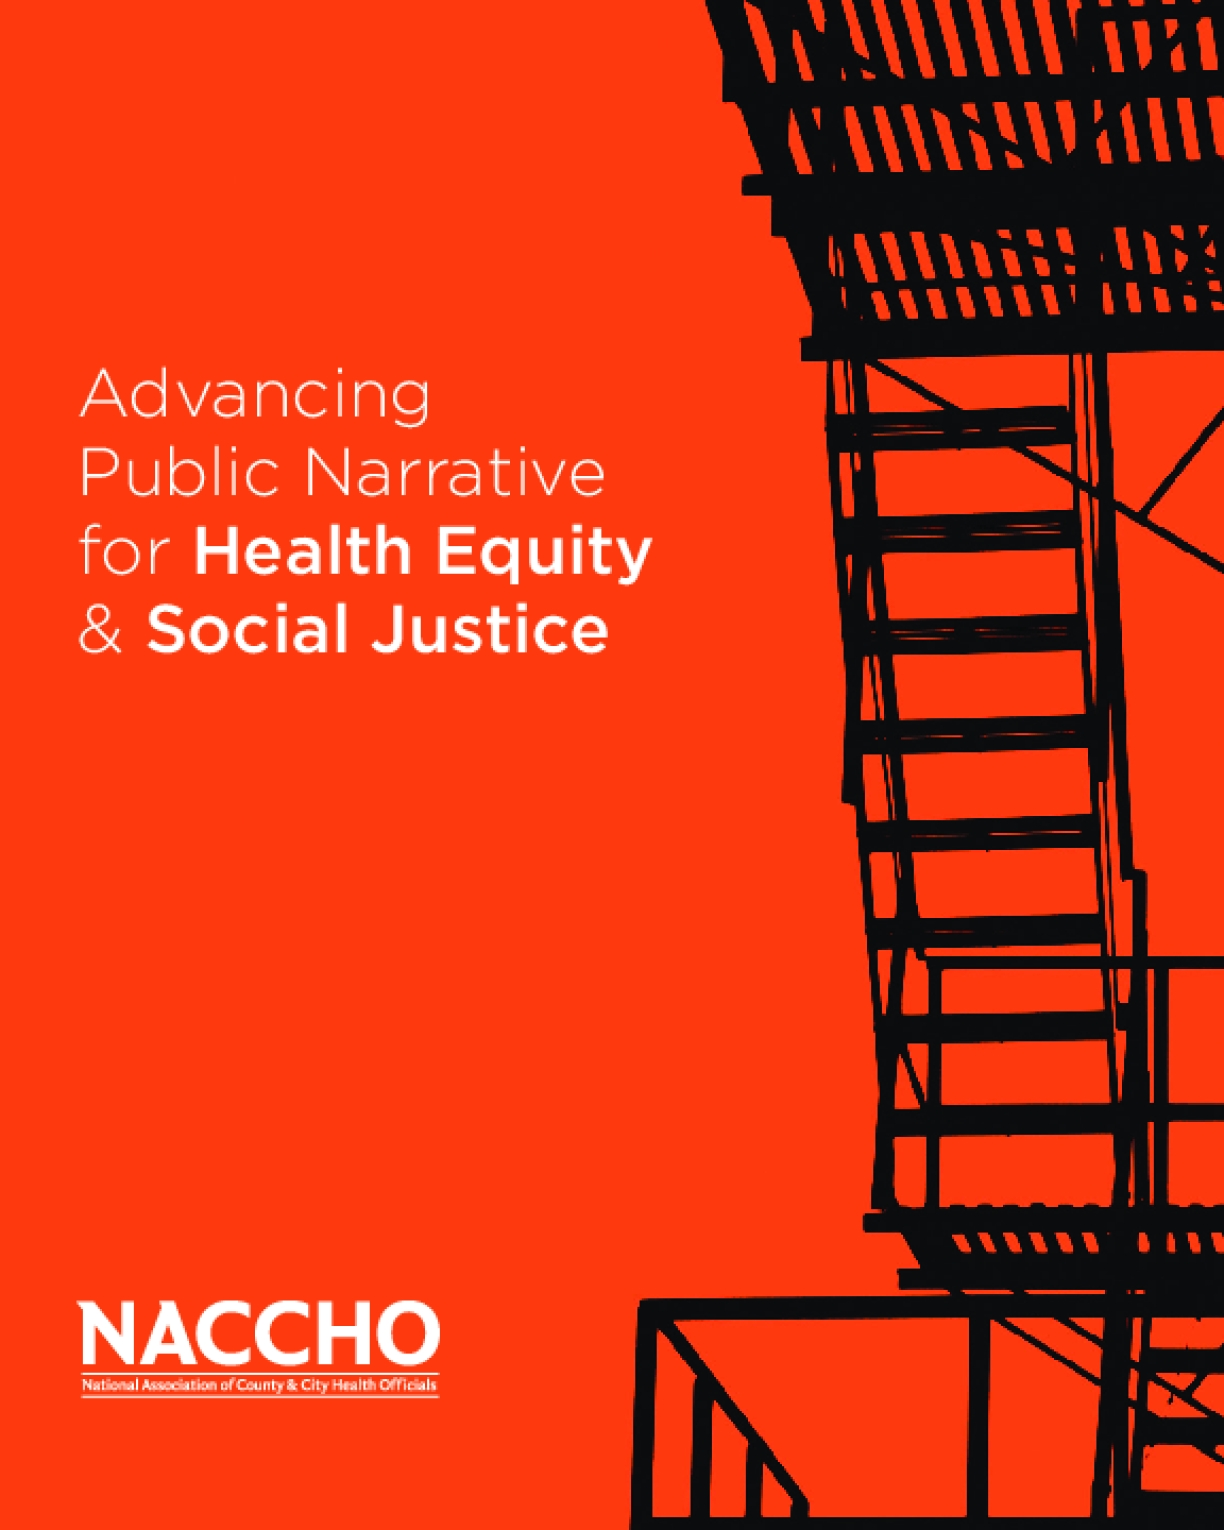 Advancing Public Narrative for Health Equity and Social Justice